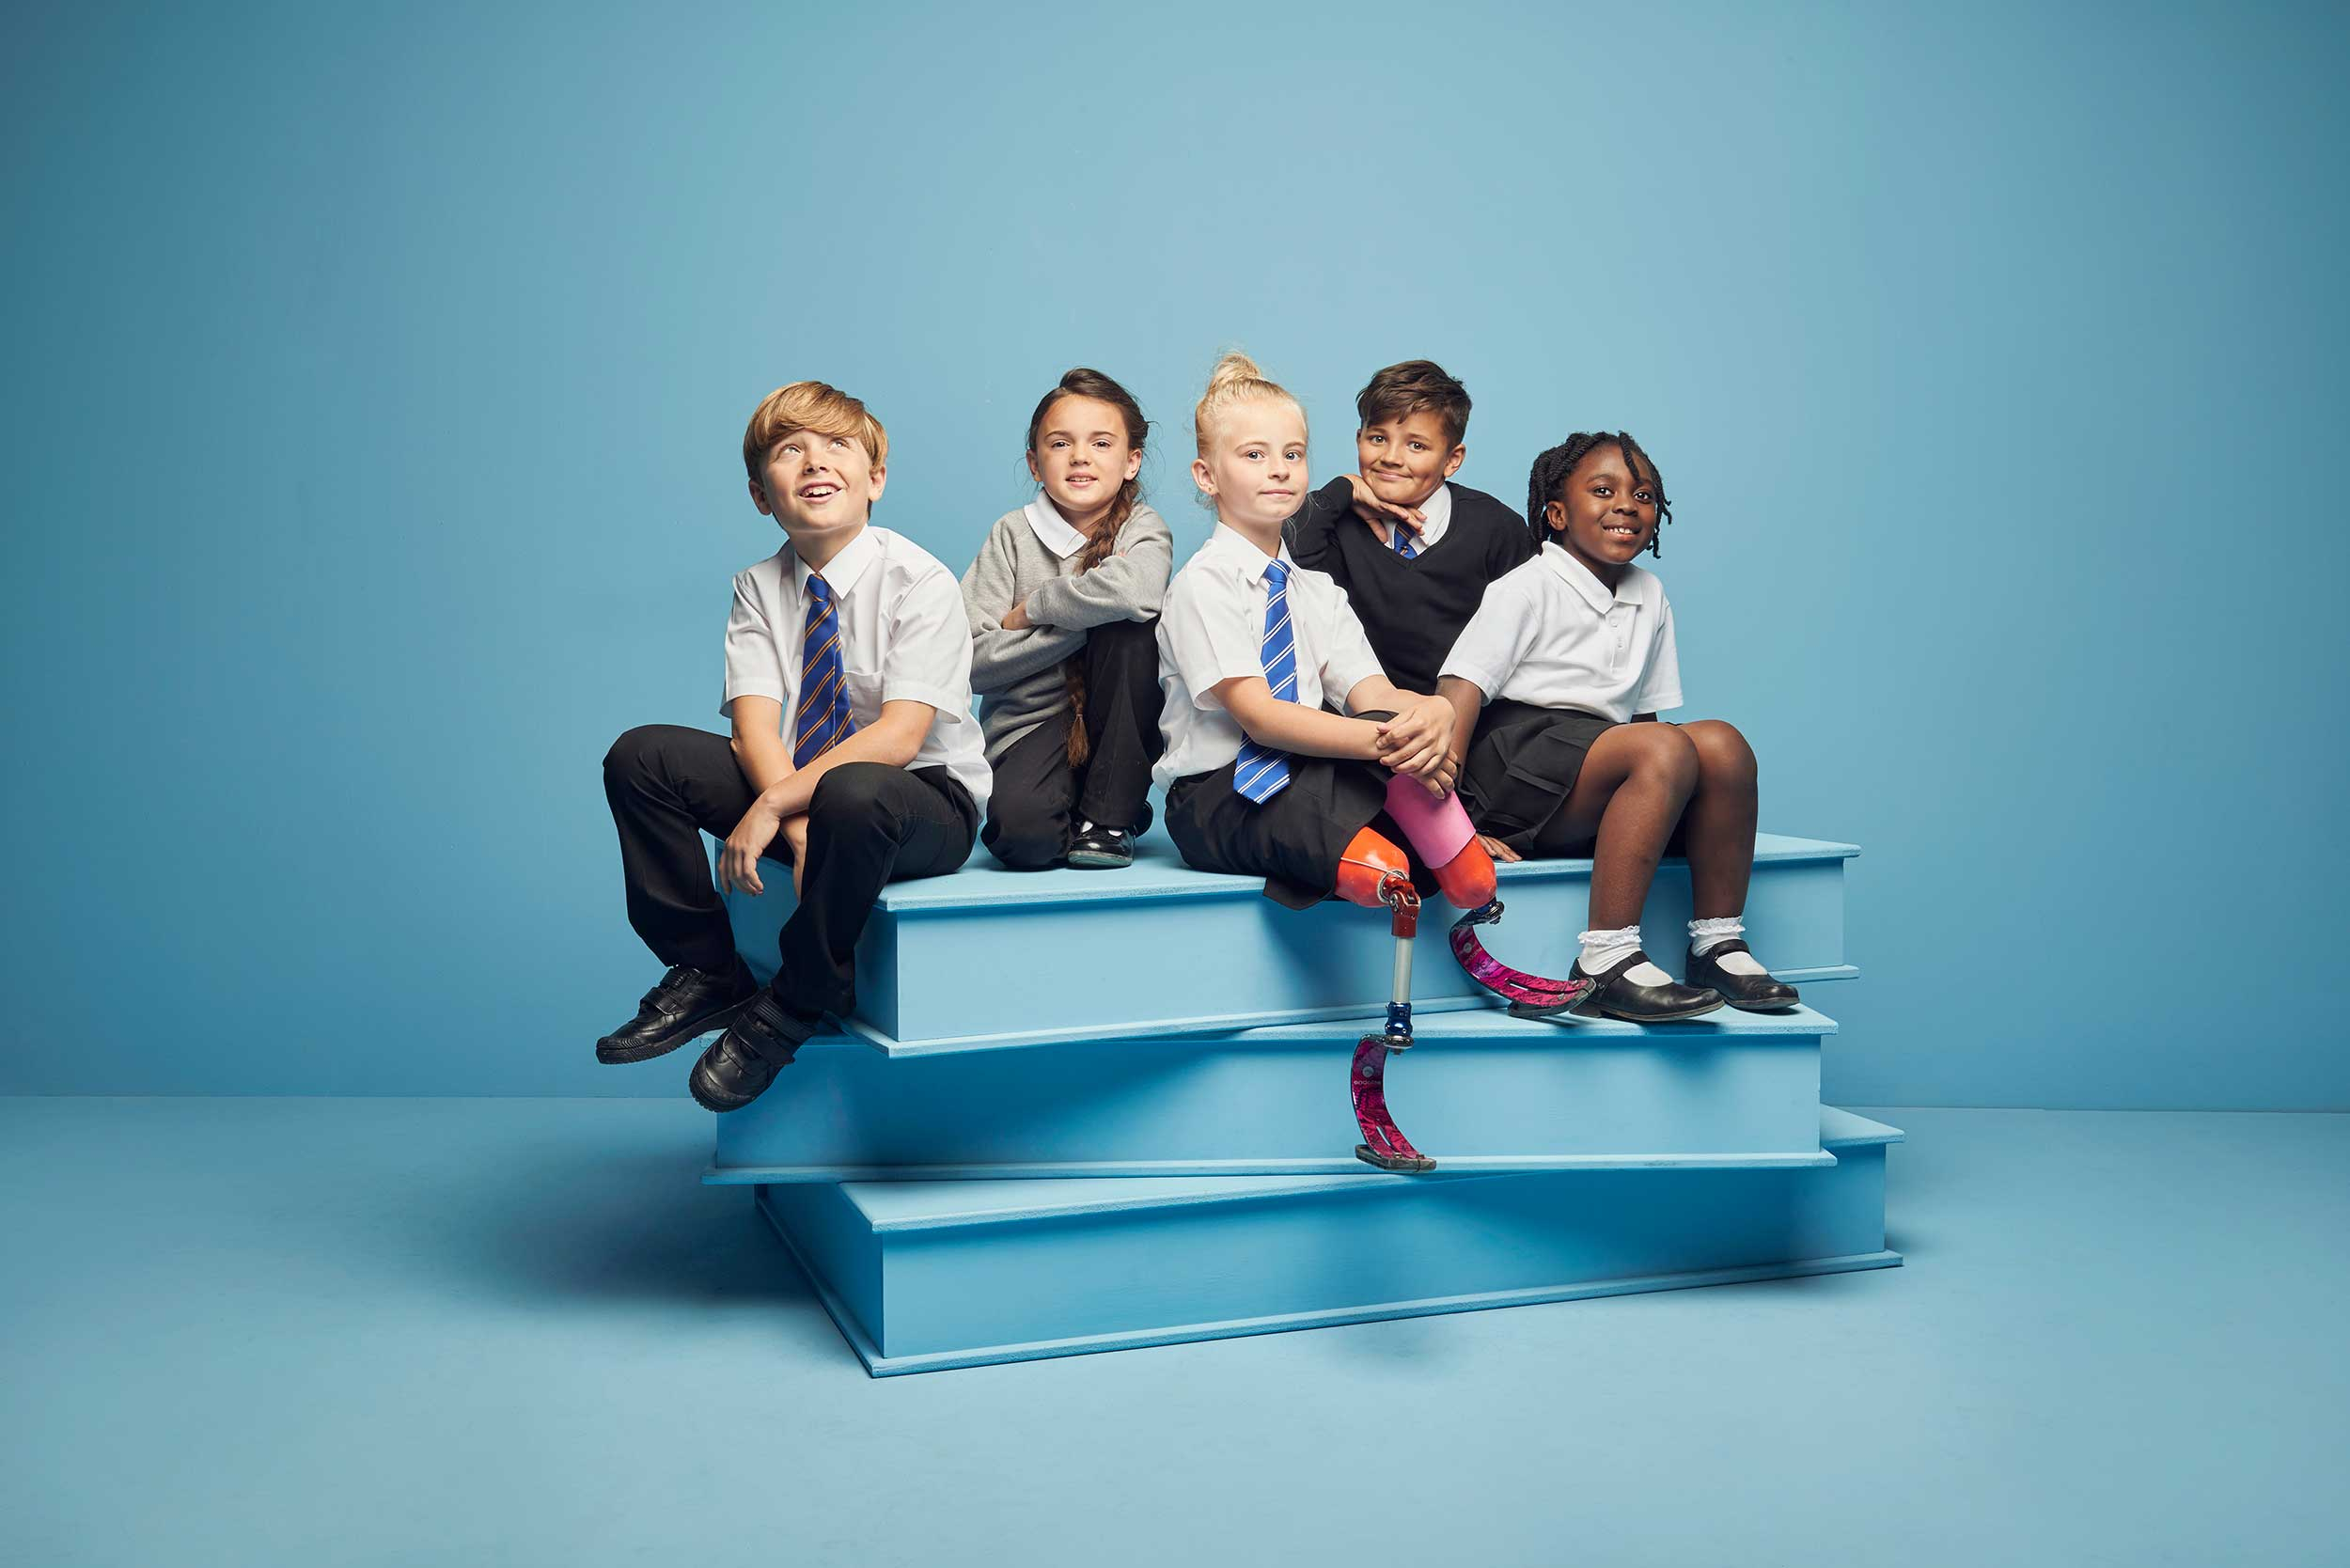 Kids in school uniform sitting on books